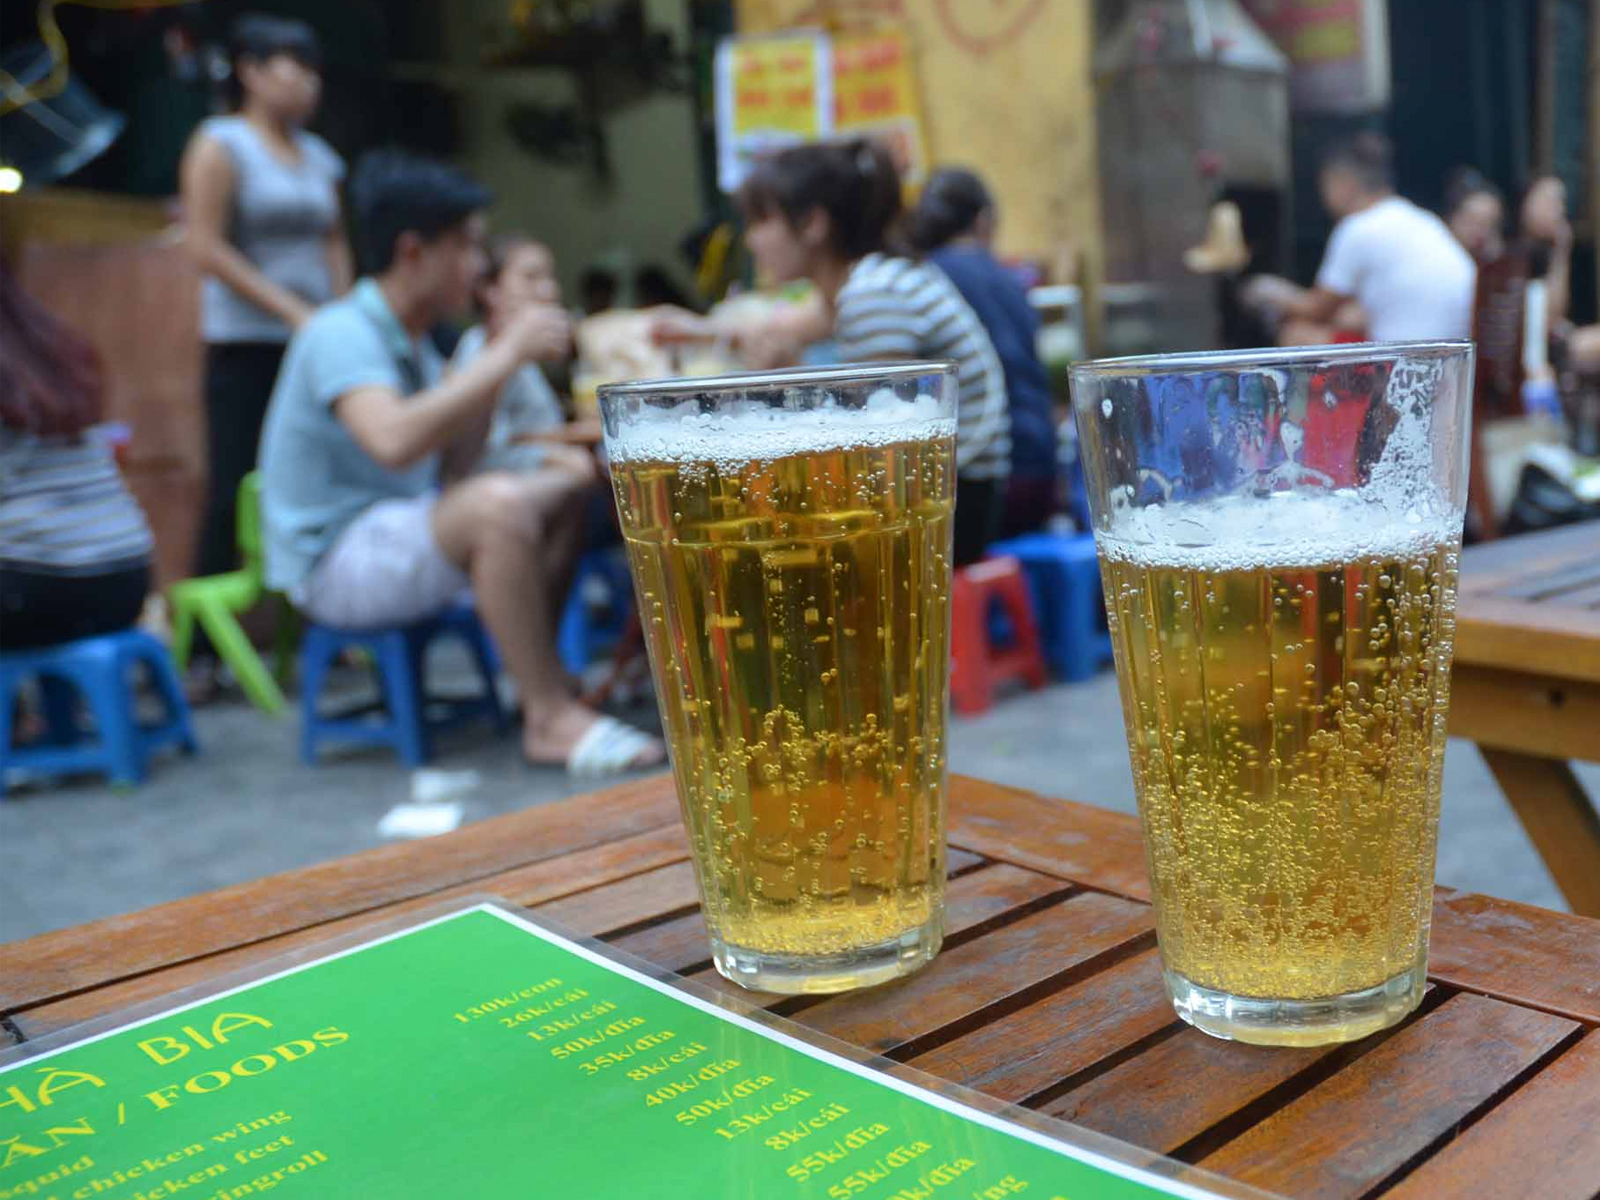 Bia hoi – the famous Vietnamese beer you should try